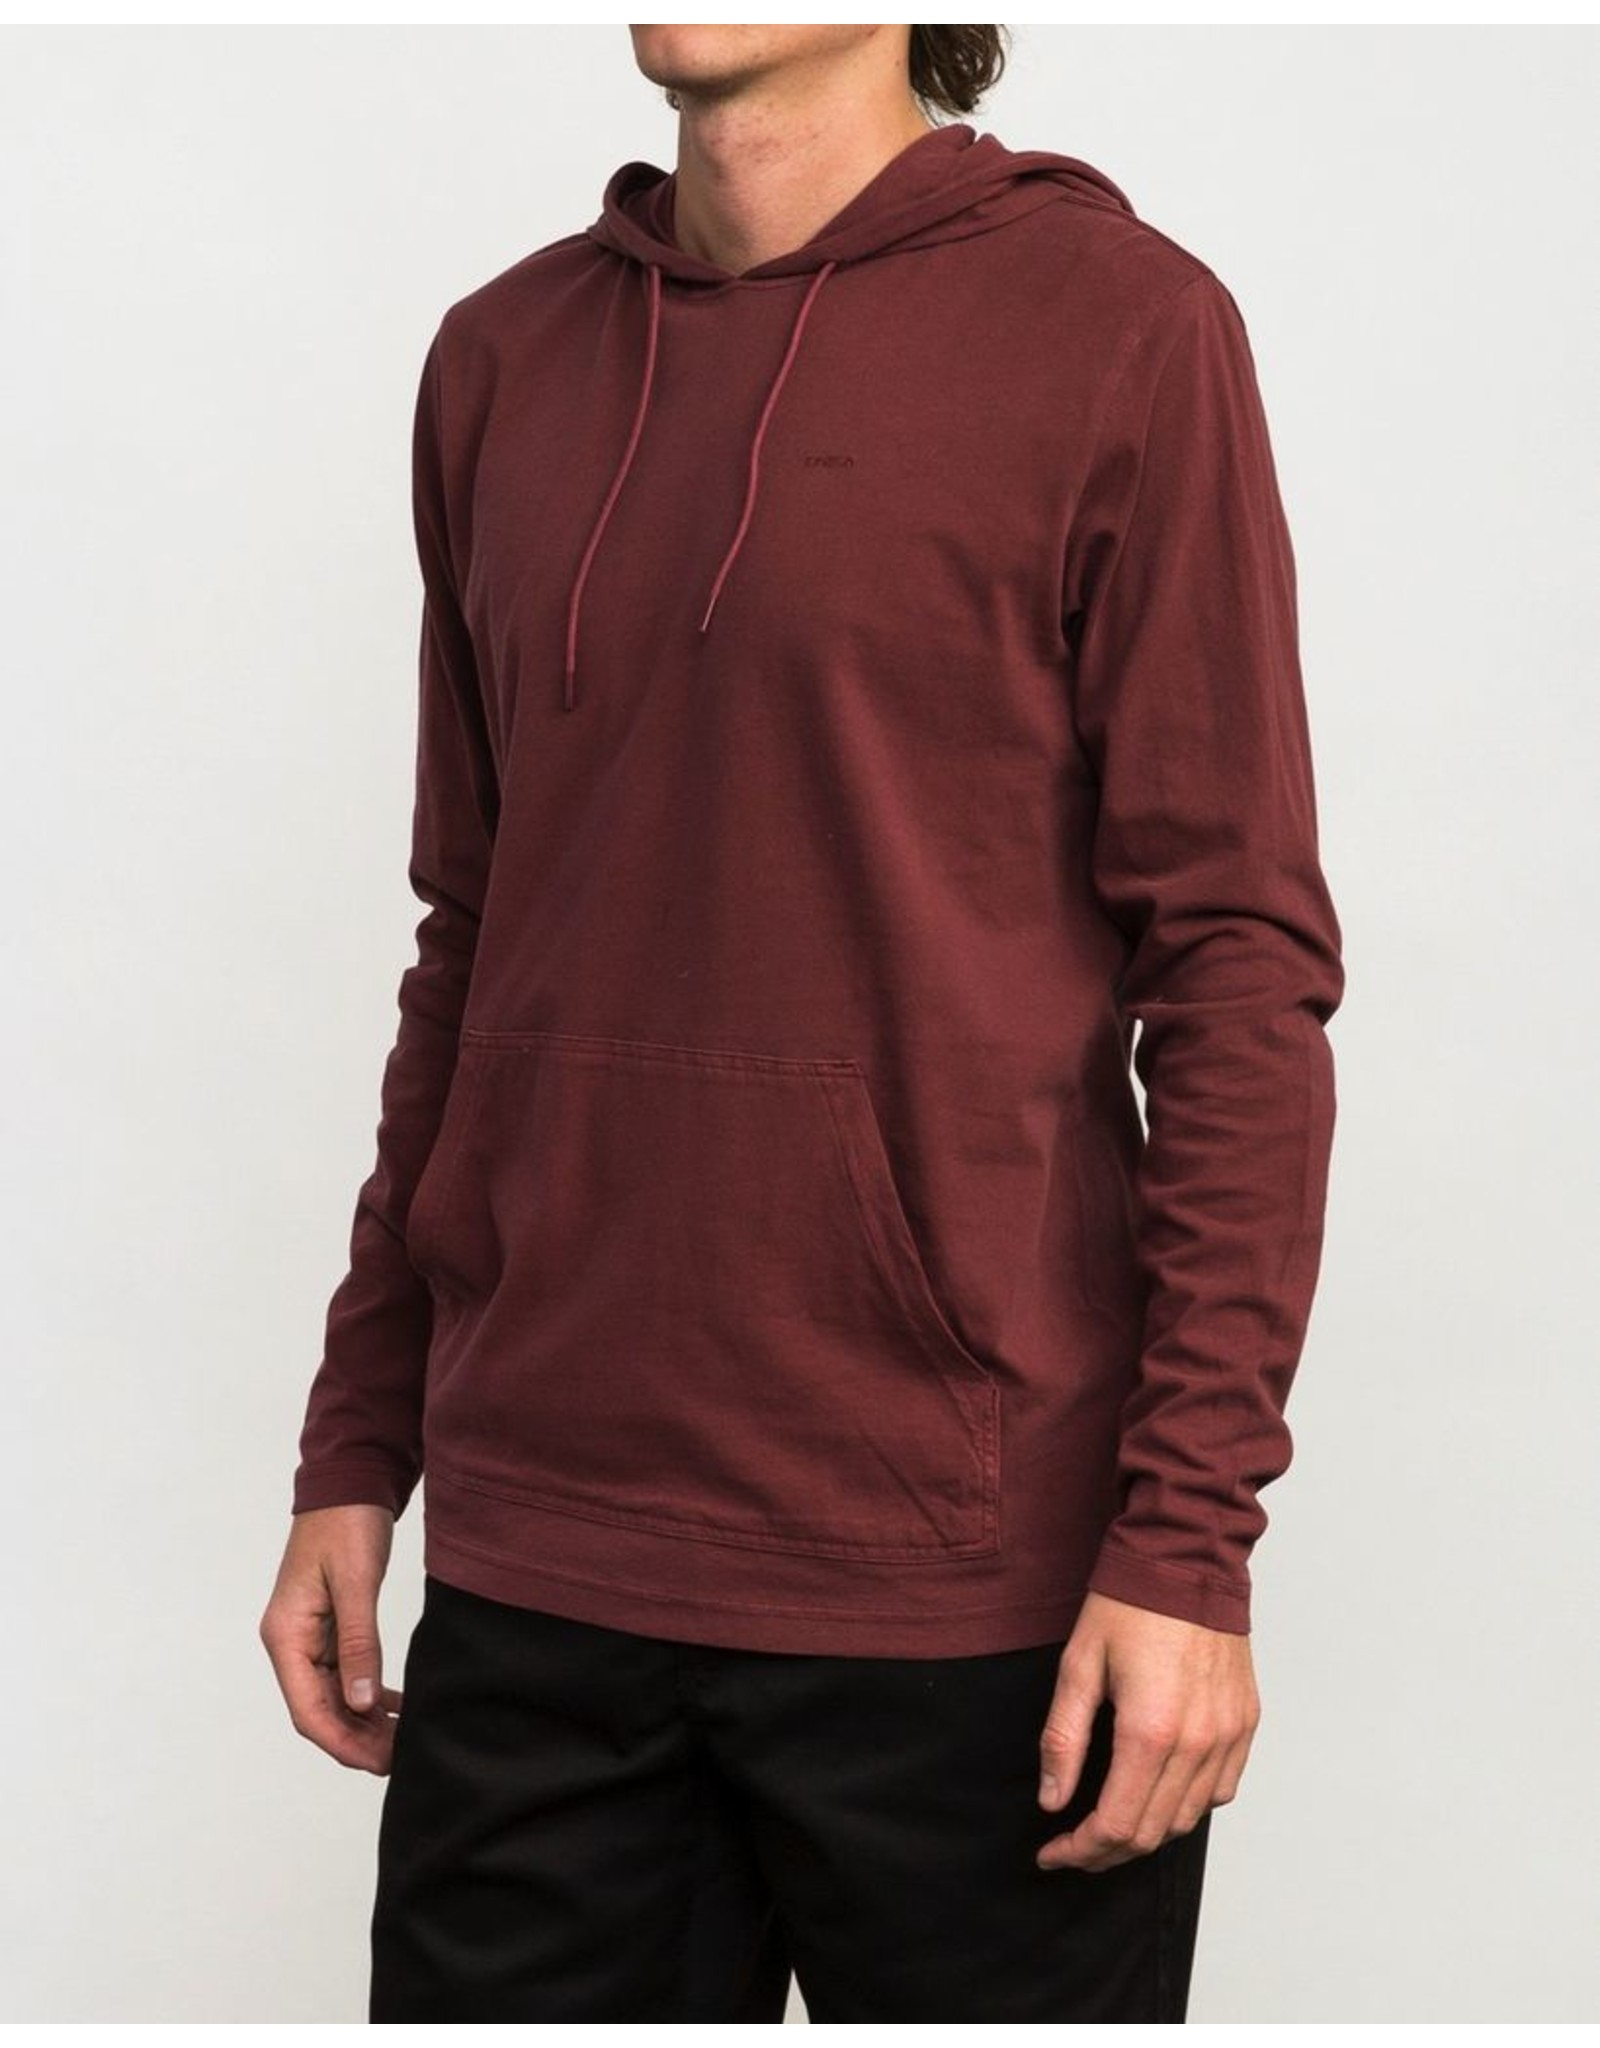 RVCA Mens PTC Pigment Hooded Shirt